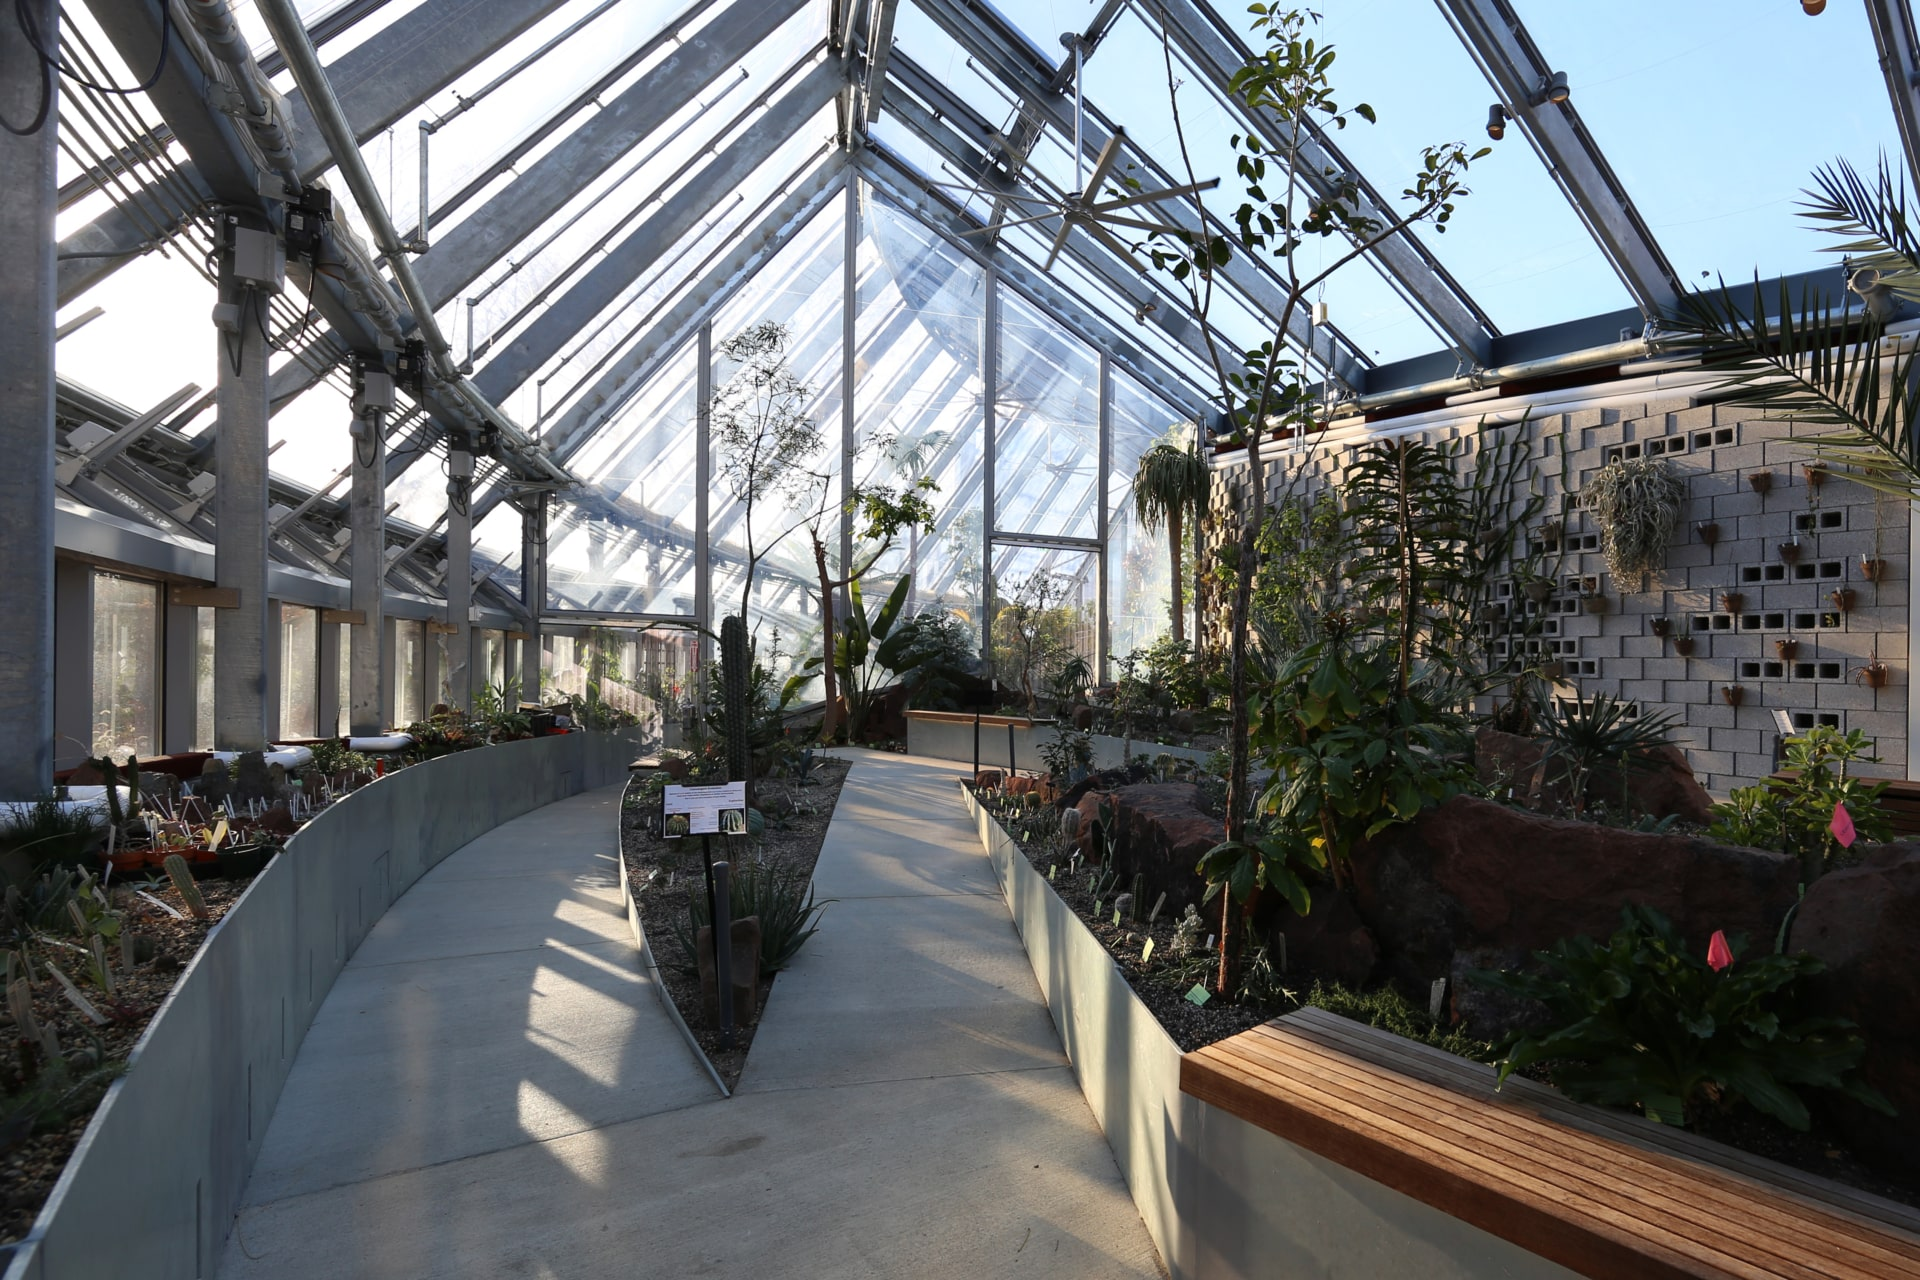 Global Flora at Wellesley College has reinterpreted the design of a sustainable greenhouse with a Texlon ETFE roof and walls.